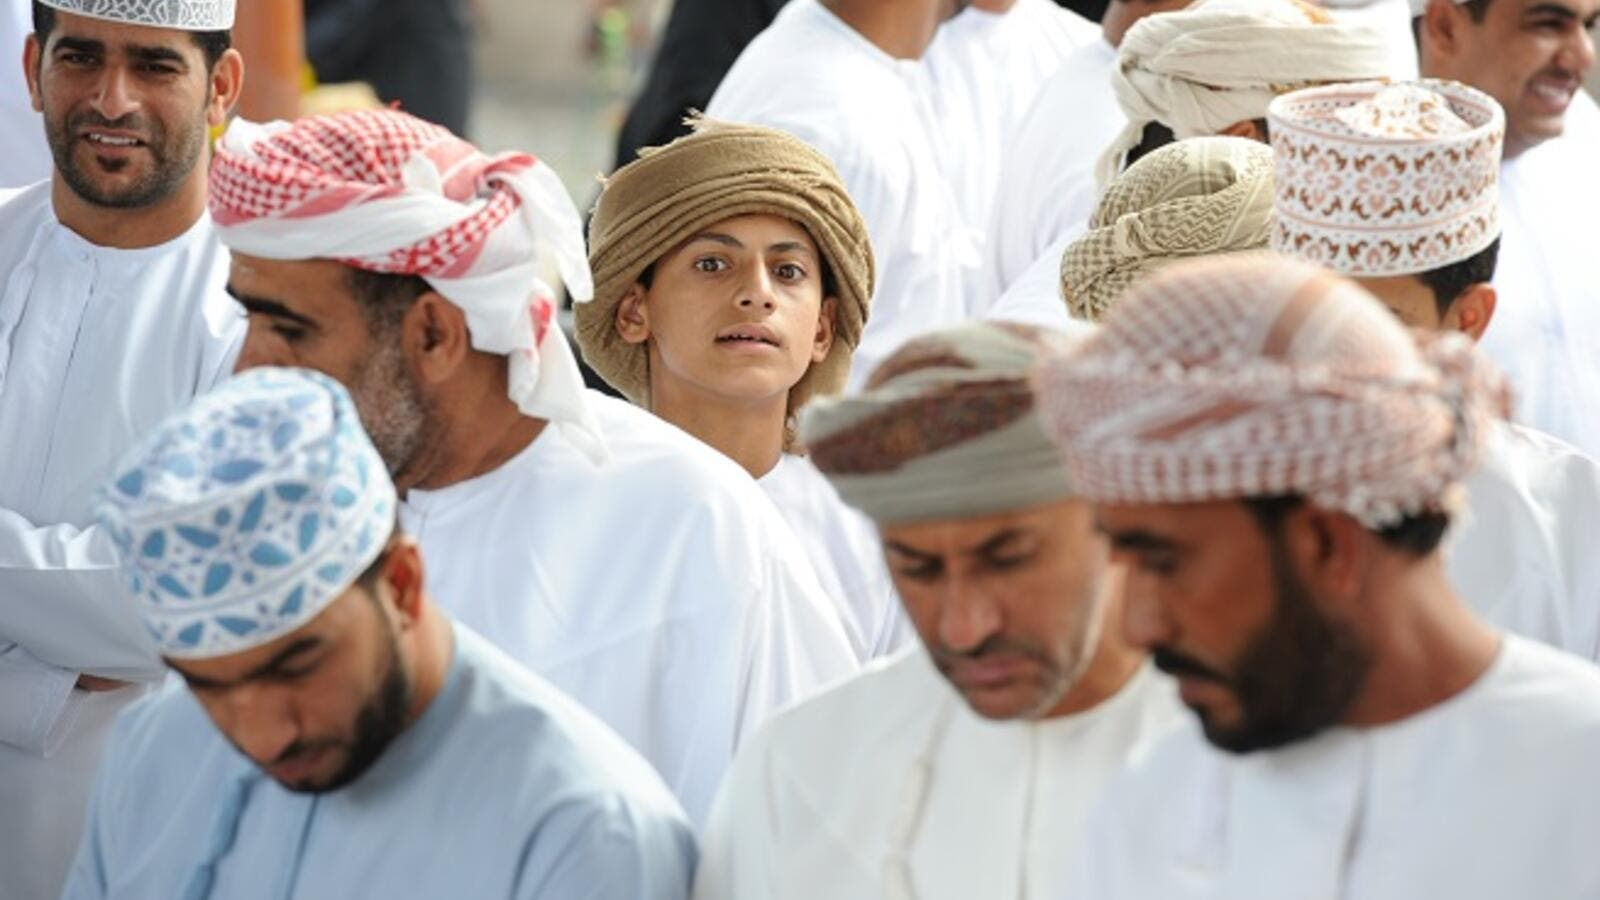 Omani jobseekers should not wait for a government job, but rather, aspire to start their own initiatives. (Shutterstock)